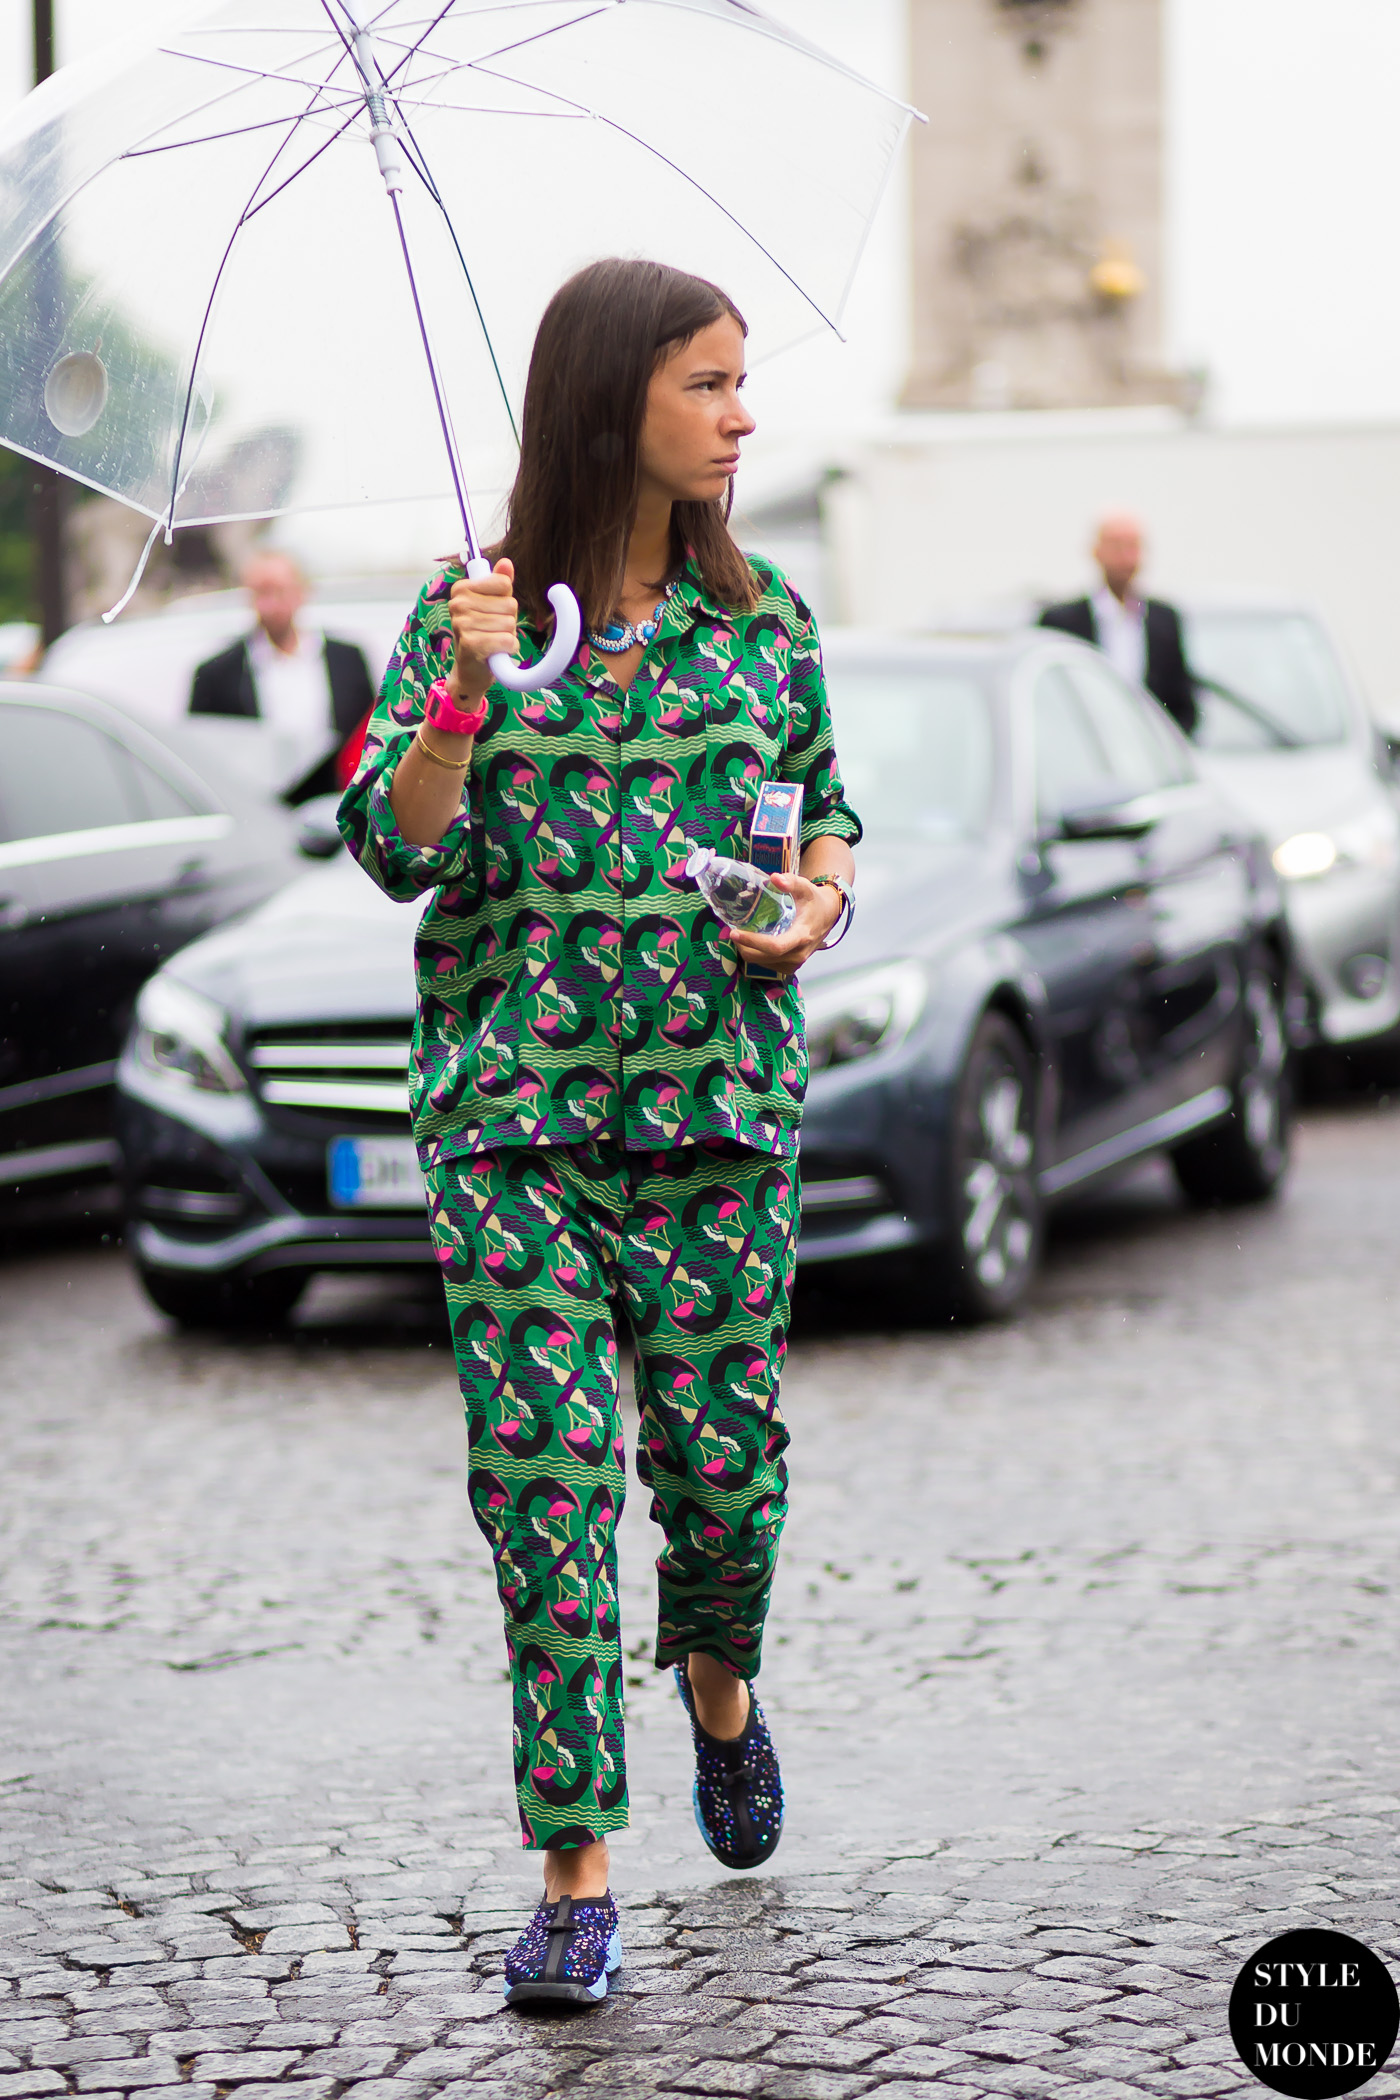 Paris Men 39 S Fashion Week Spring 2015 Street Style Natasha Goldenberg Style Du Monde Street